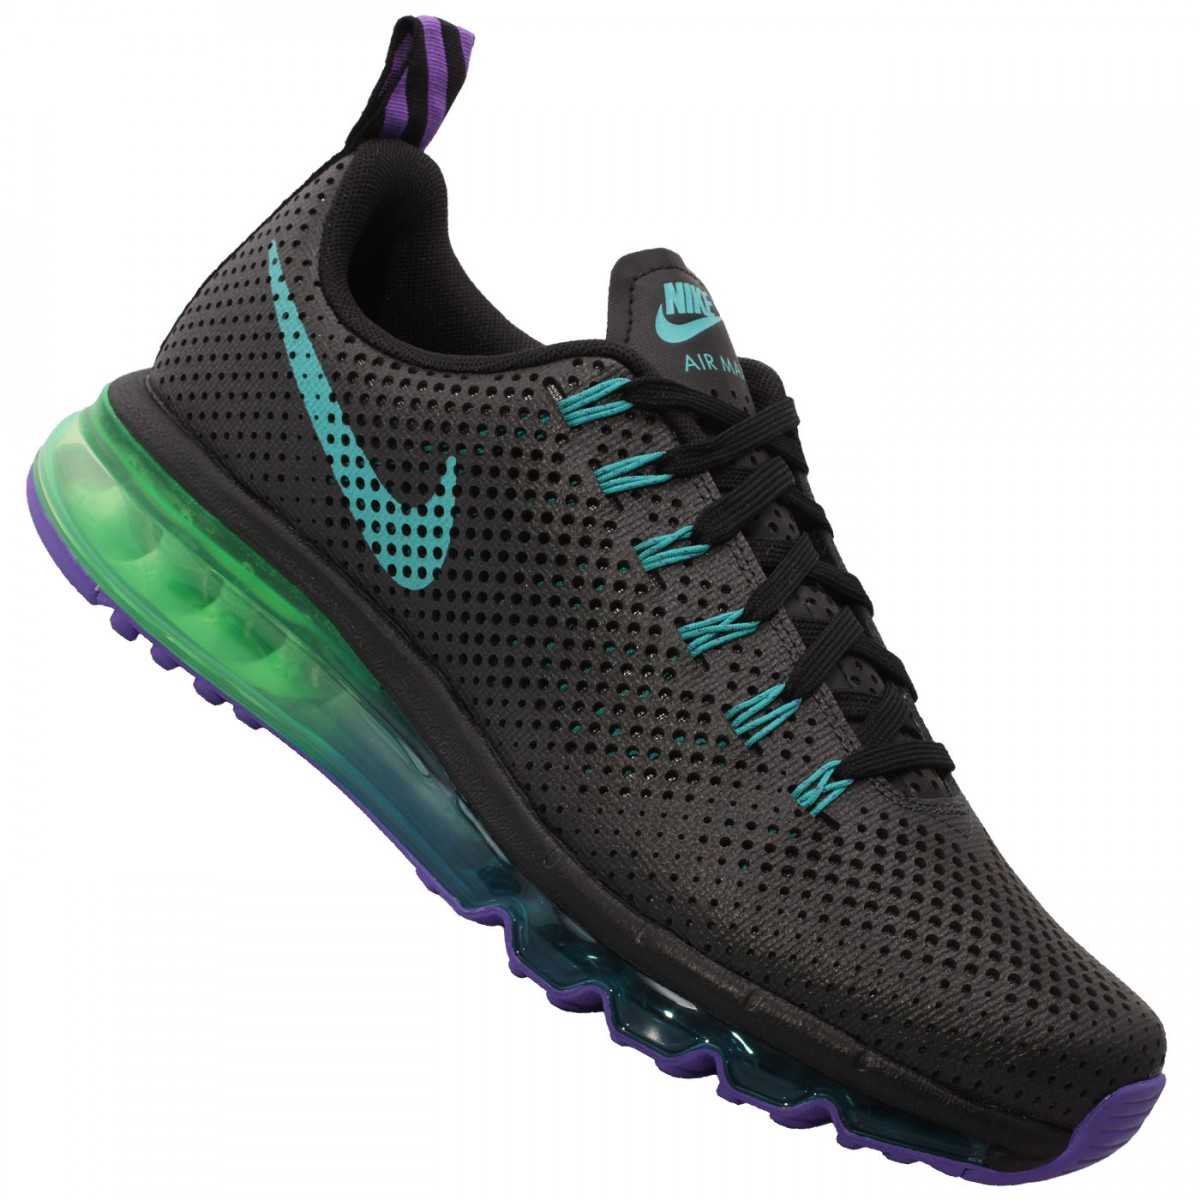 Best Price Tenis Air Max 2015 Motion 7aaa9 D6523